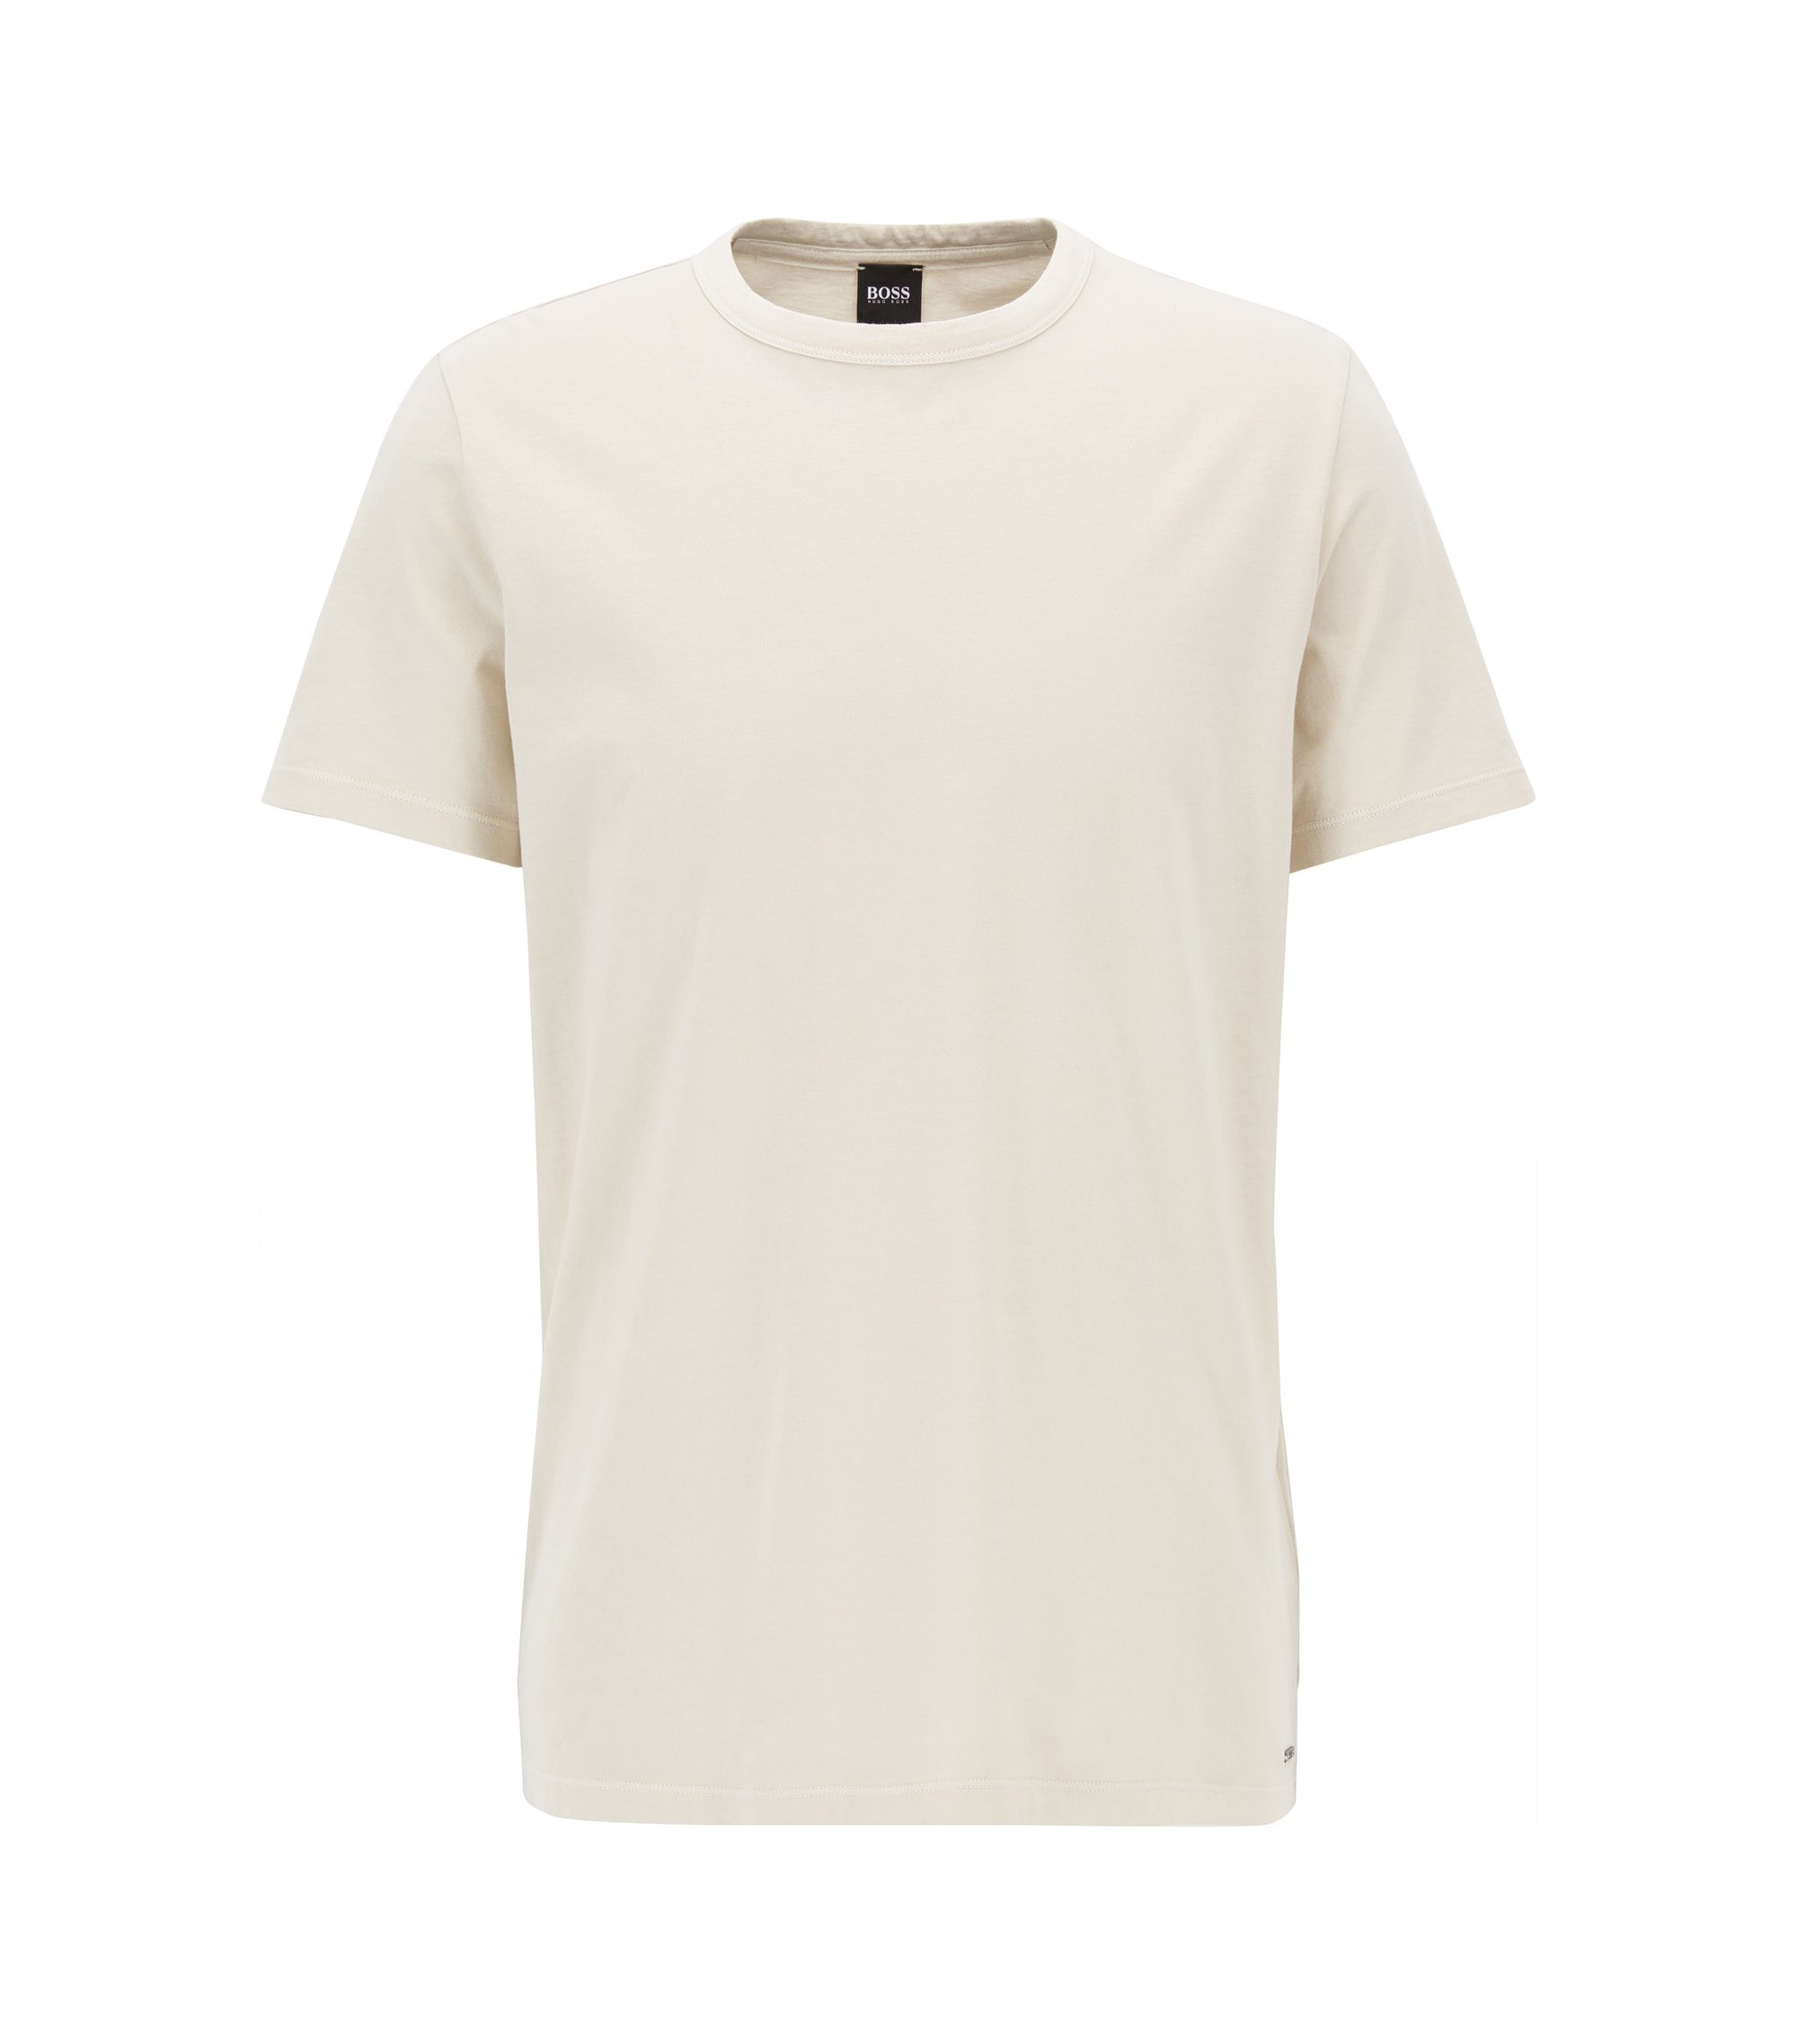 Garment Washed Cotton T-Shirt | Tessler, Natural